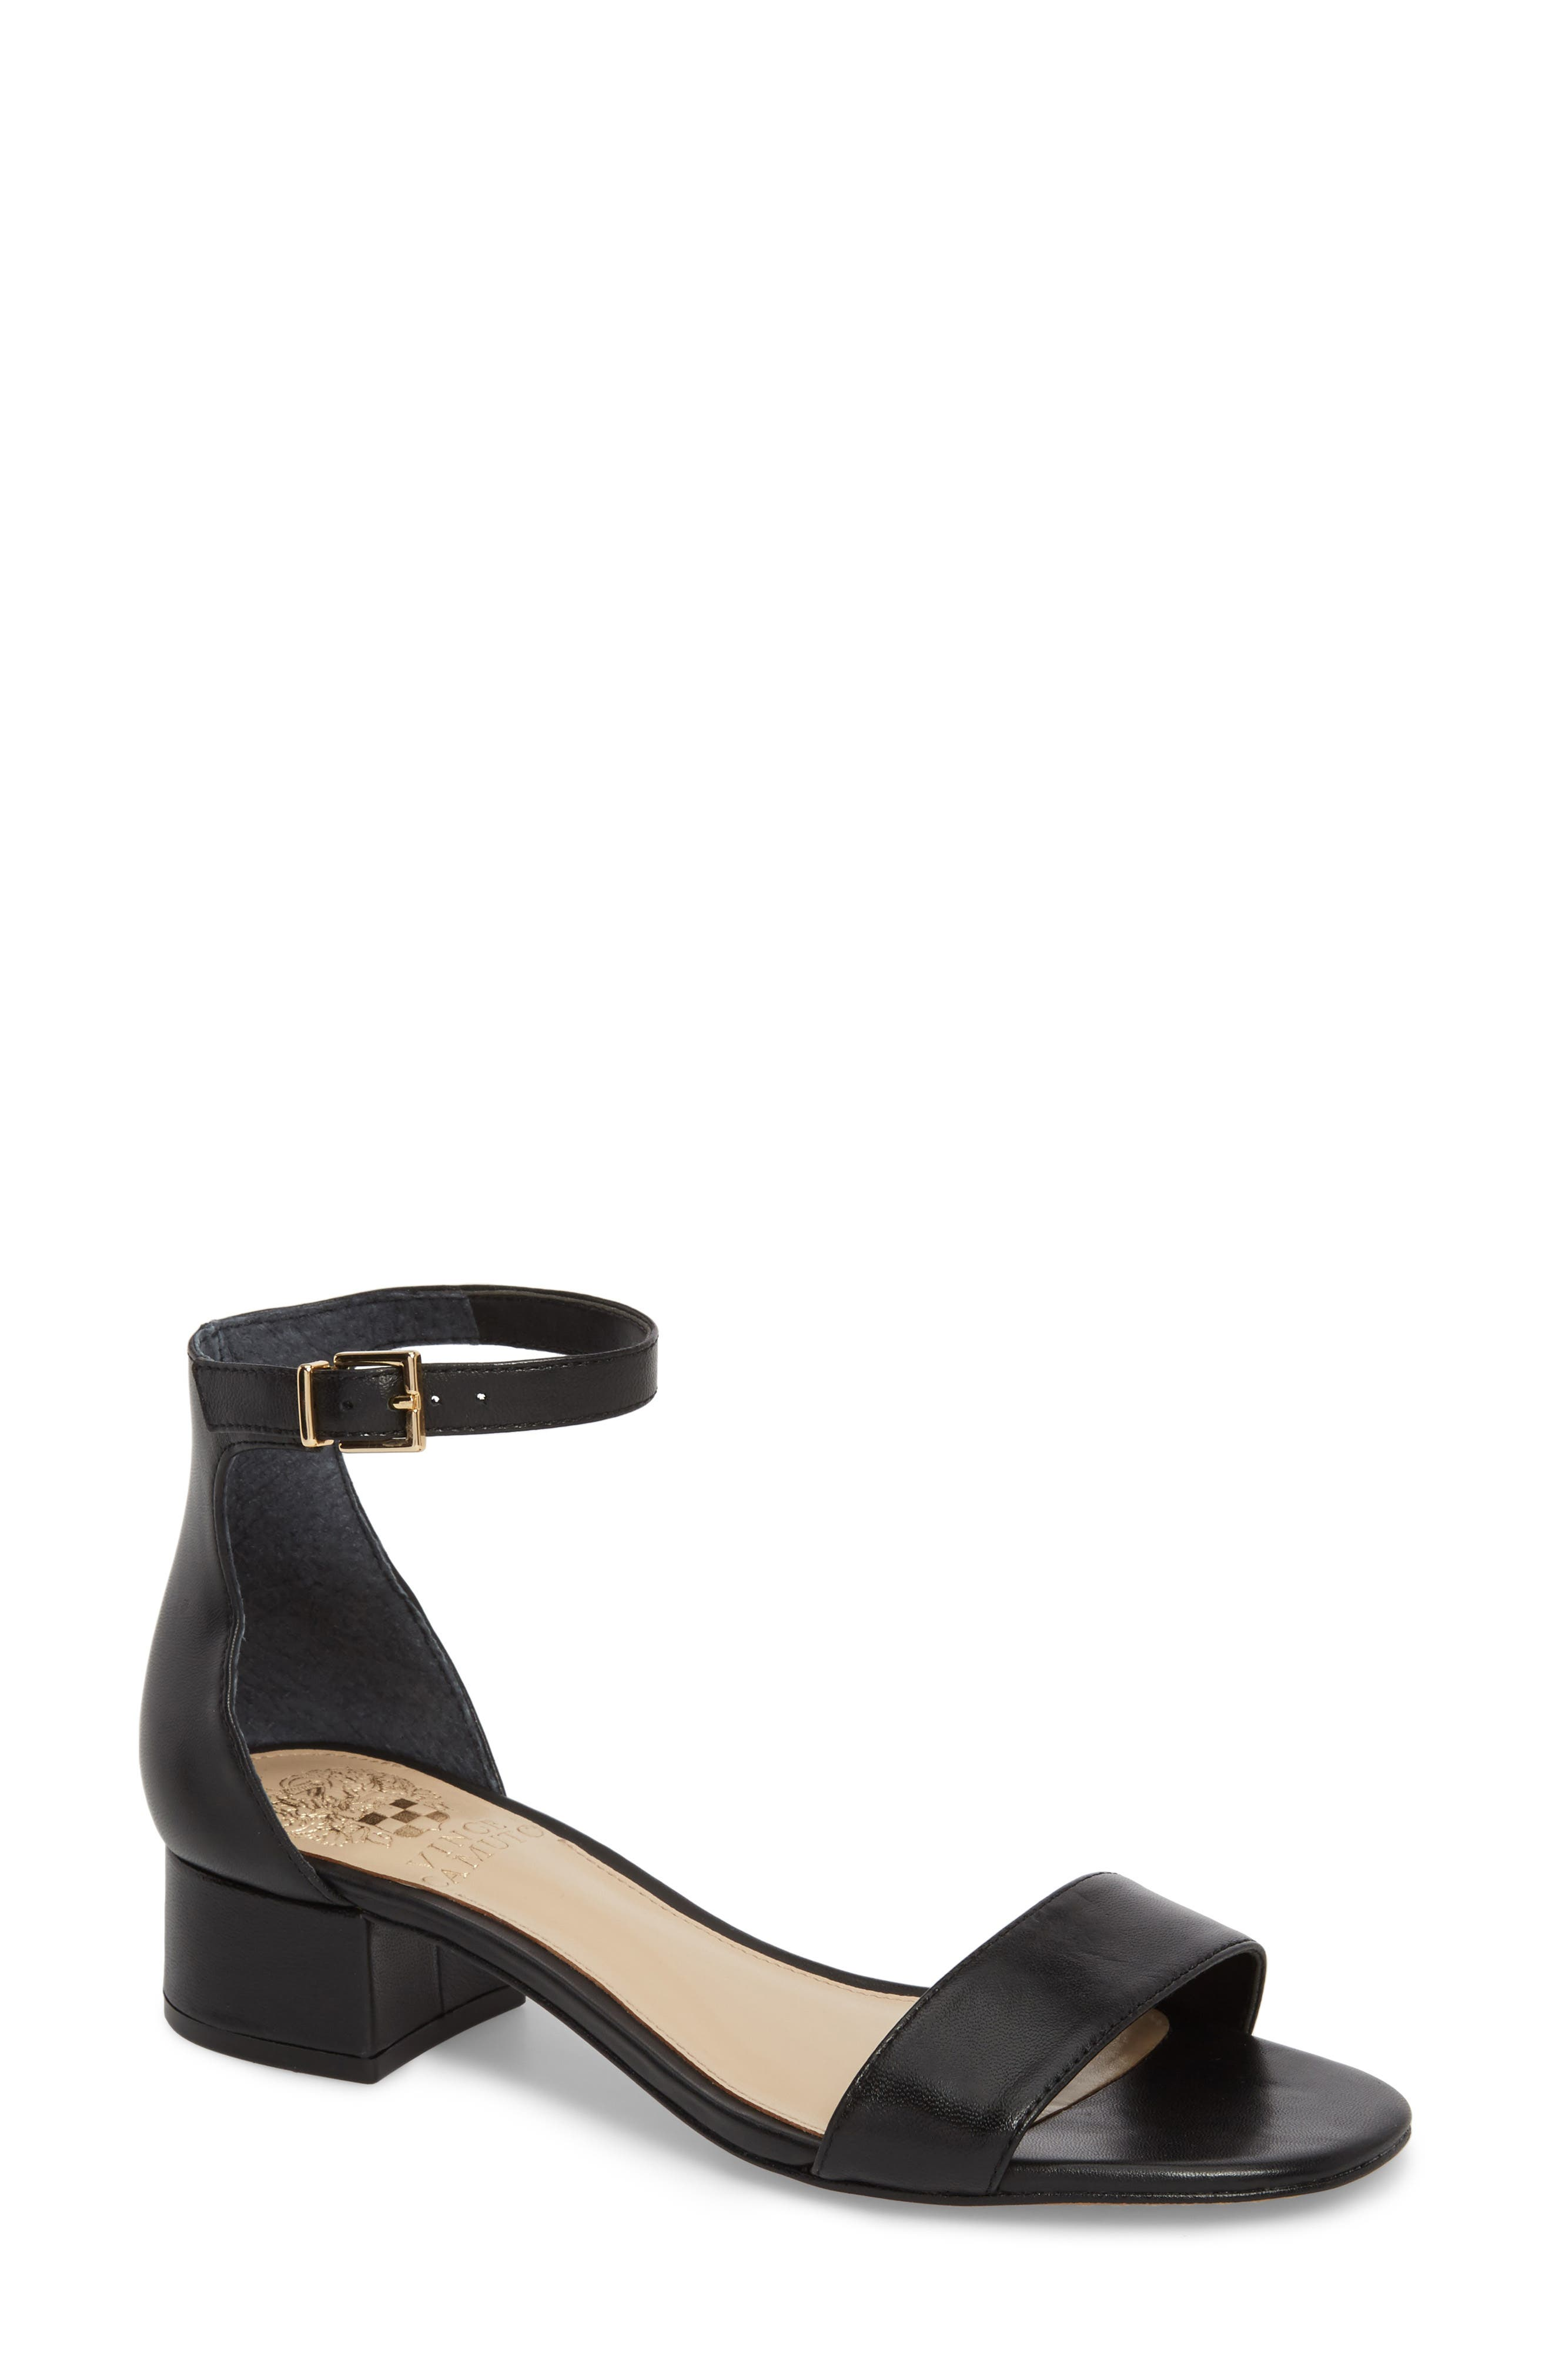 VINCE CAMUTO, Sasseta Sandal, Main thumbnail 1, color, BLACK LEATHER